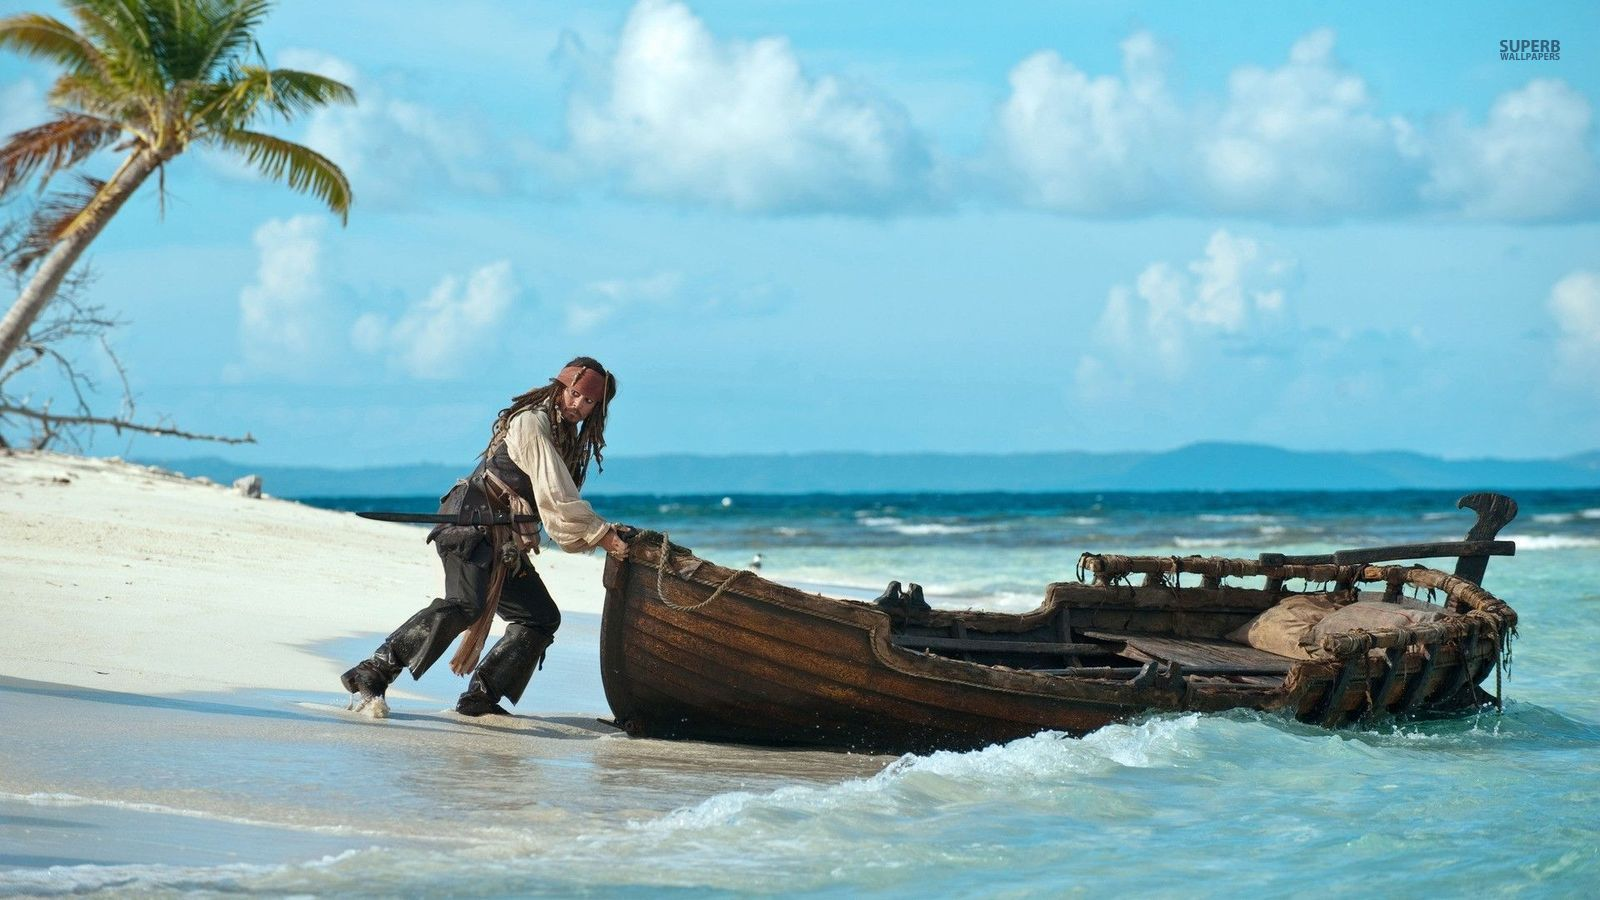 pirates images pirates of the caribbean hd wallpaper and background